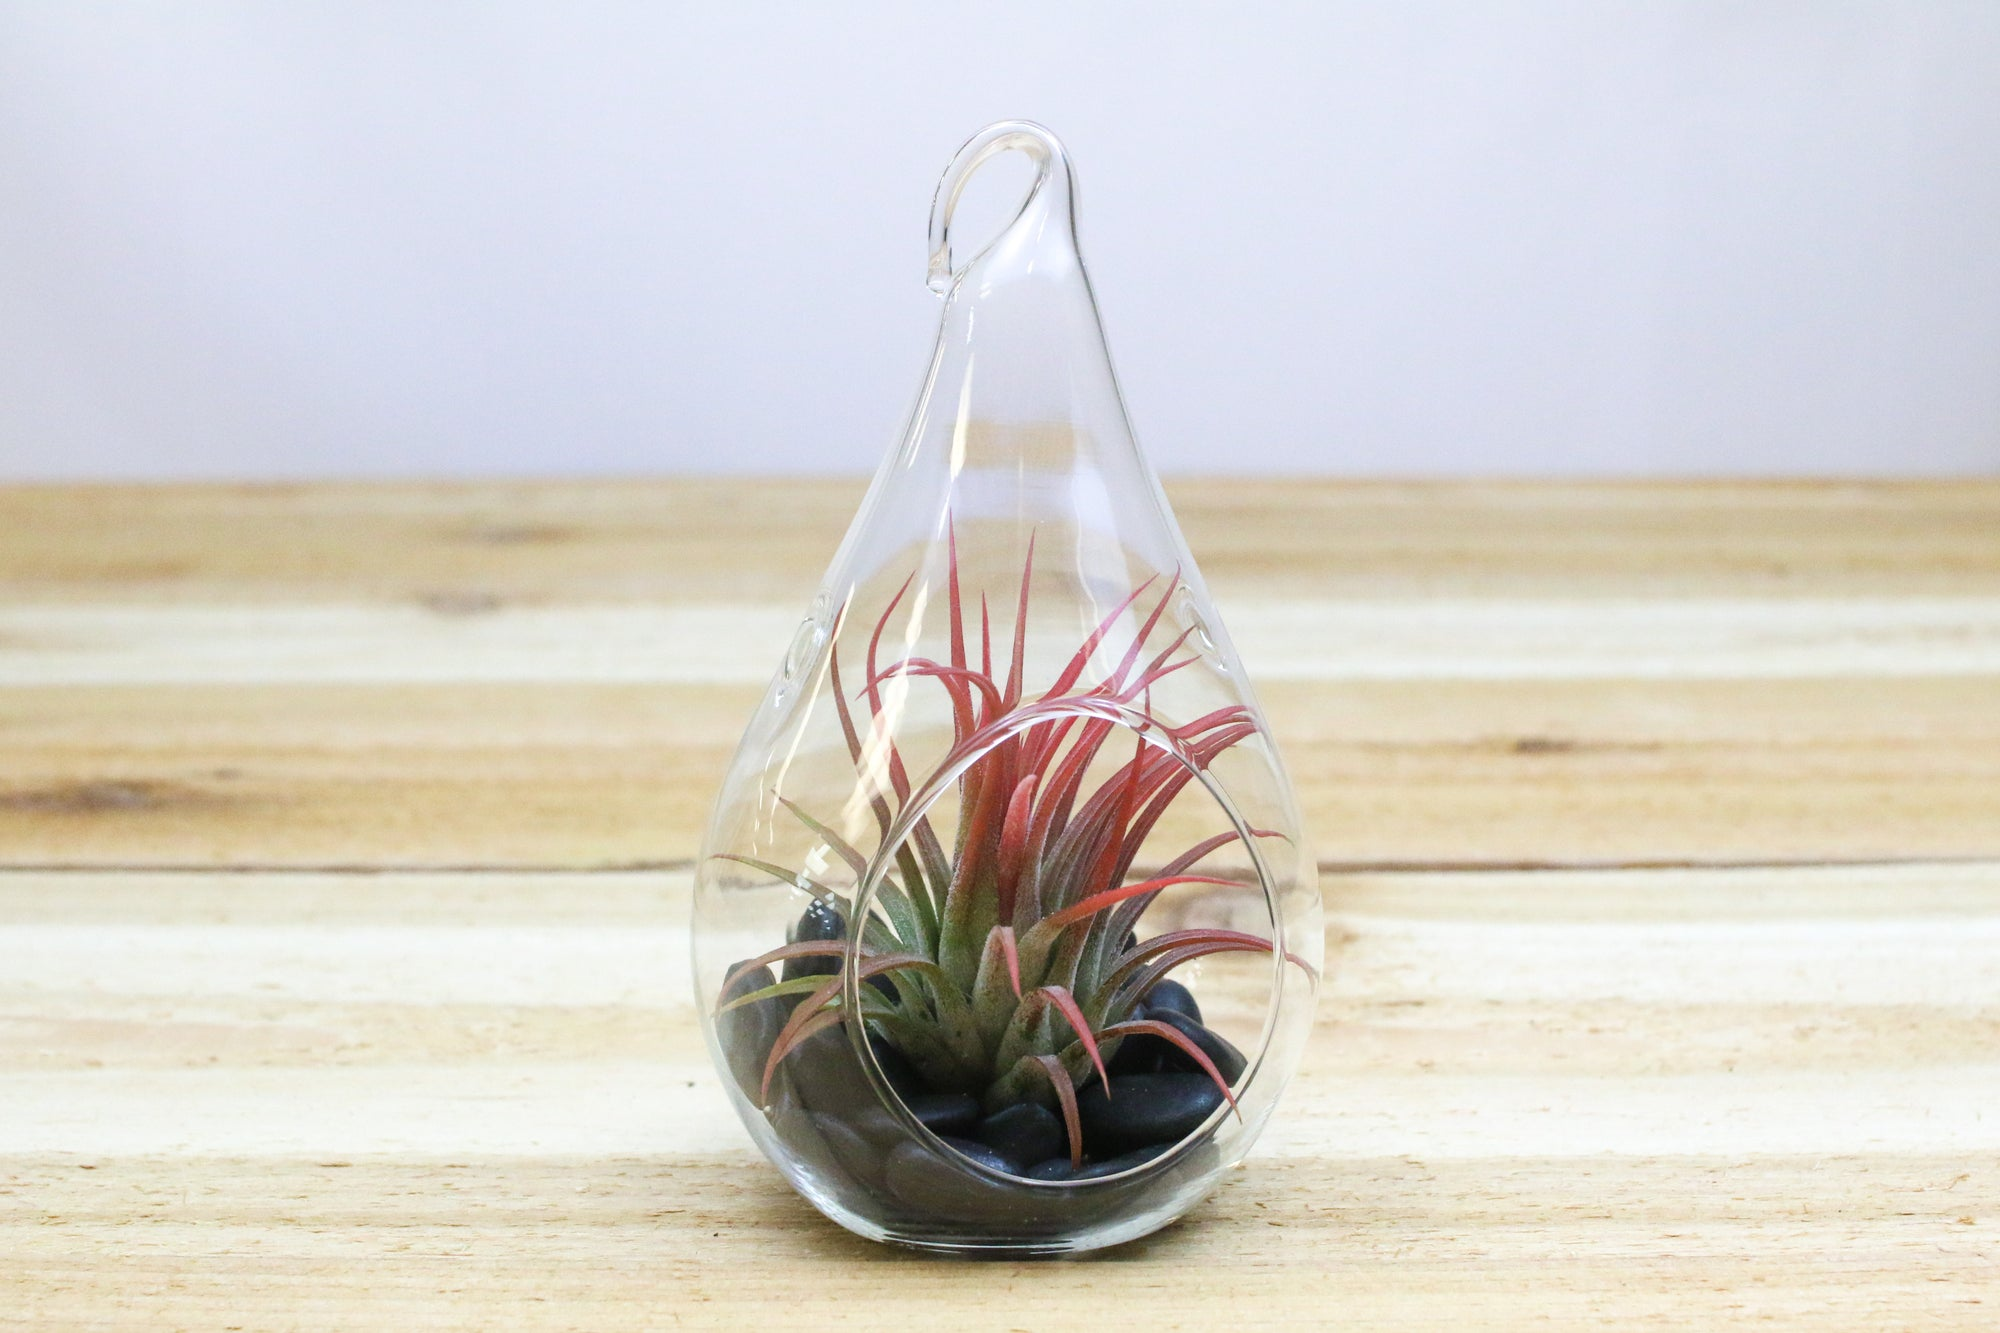 Wholesale: Teardrop Black Stone Terrarium with Air Plant [Min Order 12] from AirPlantShop.com